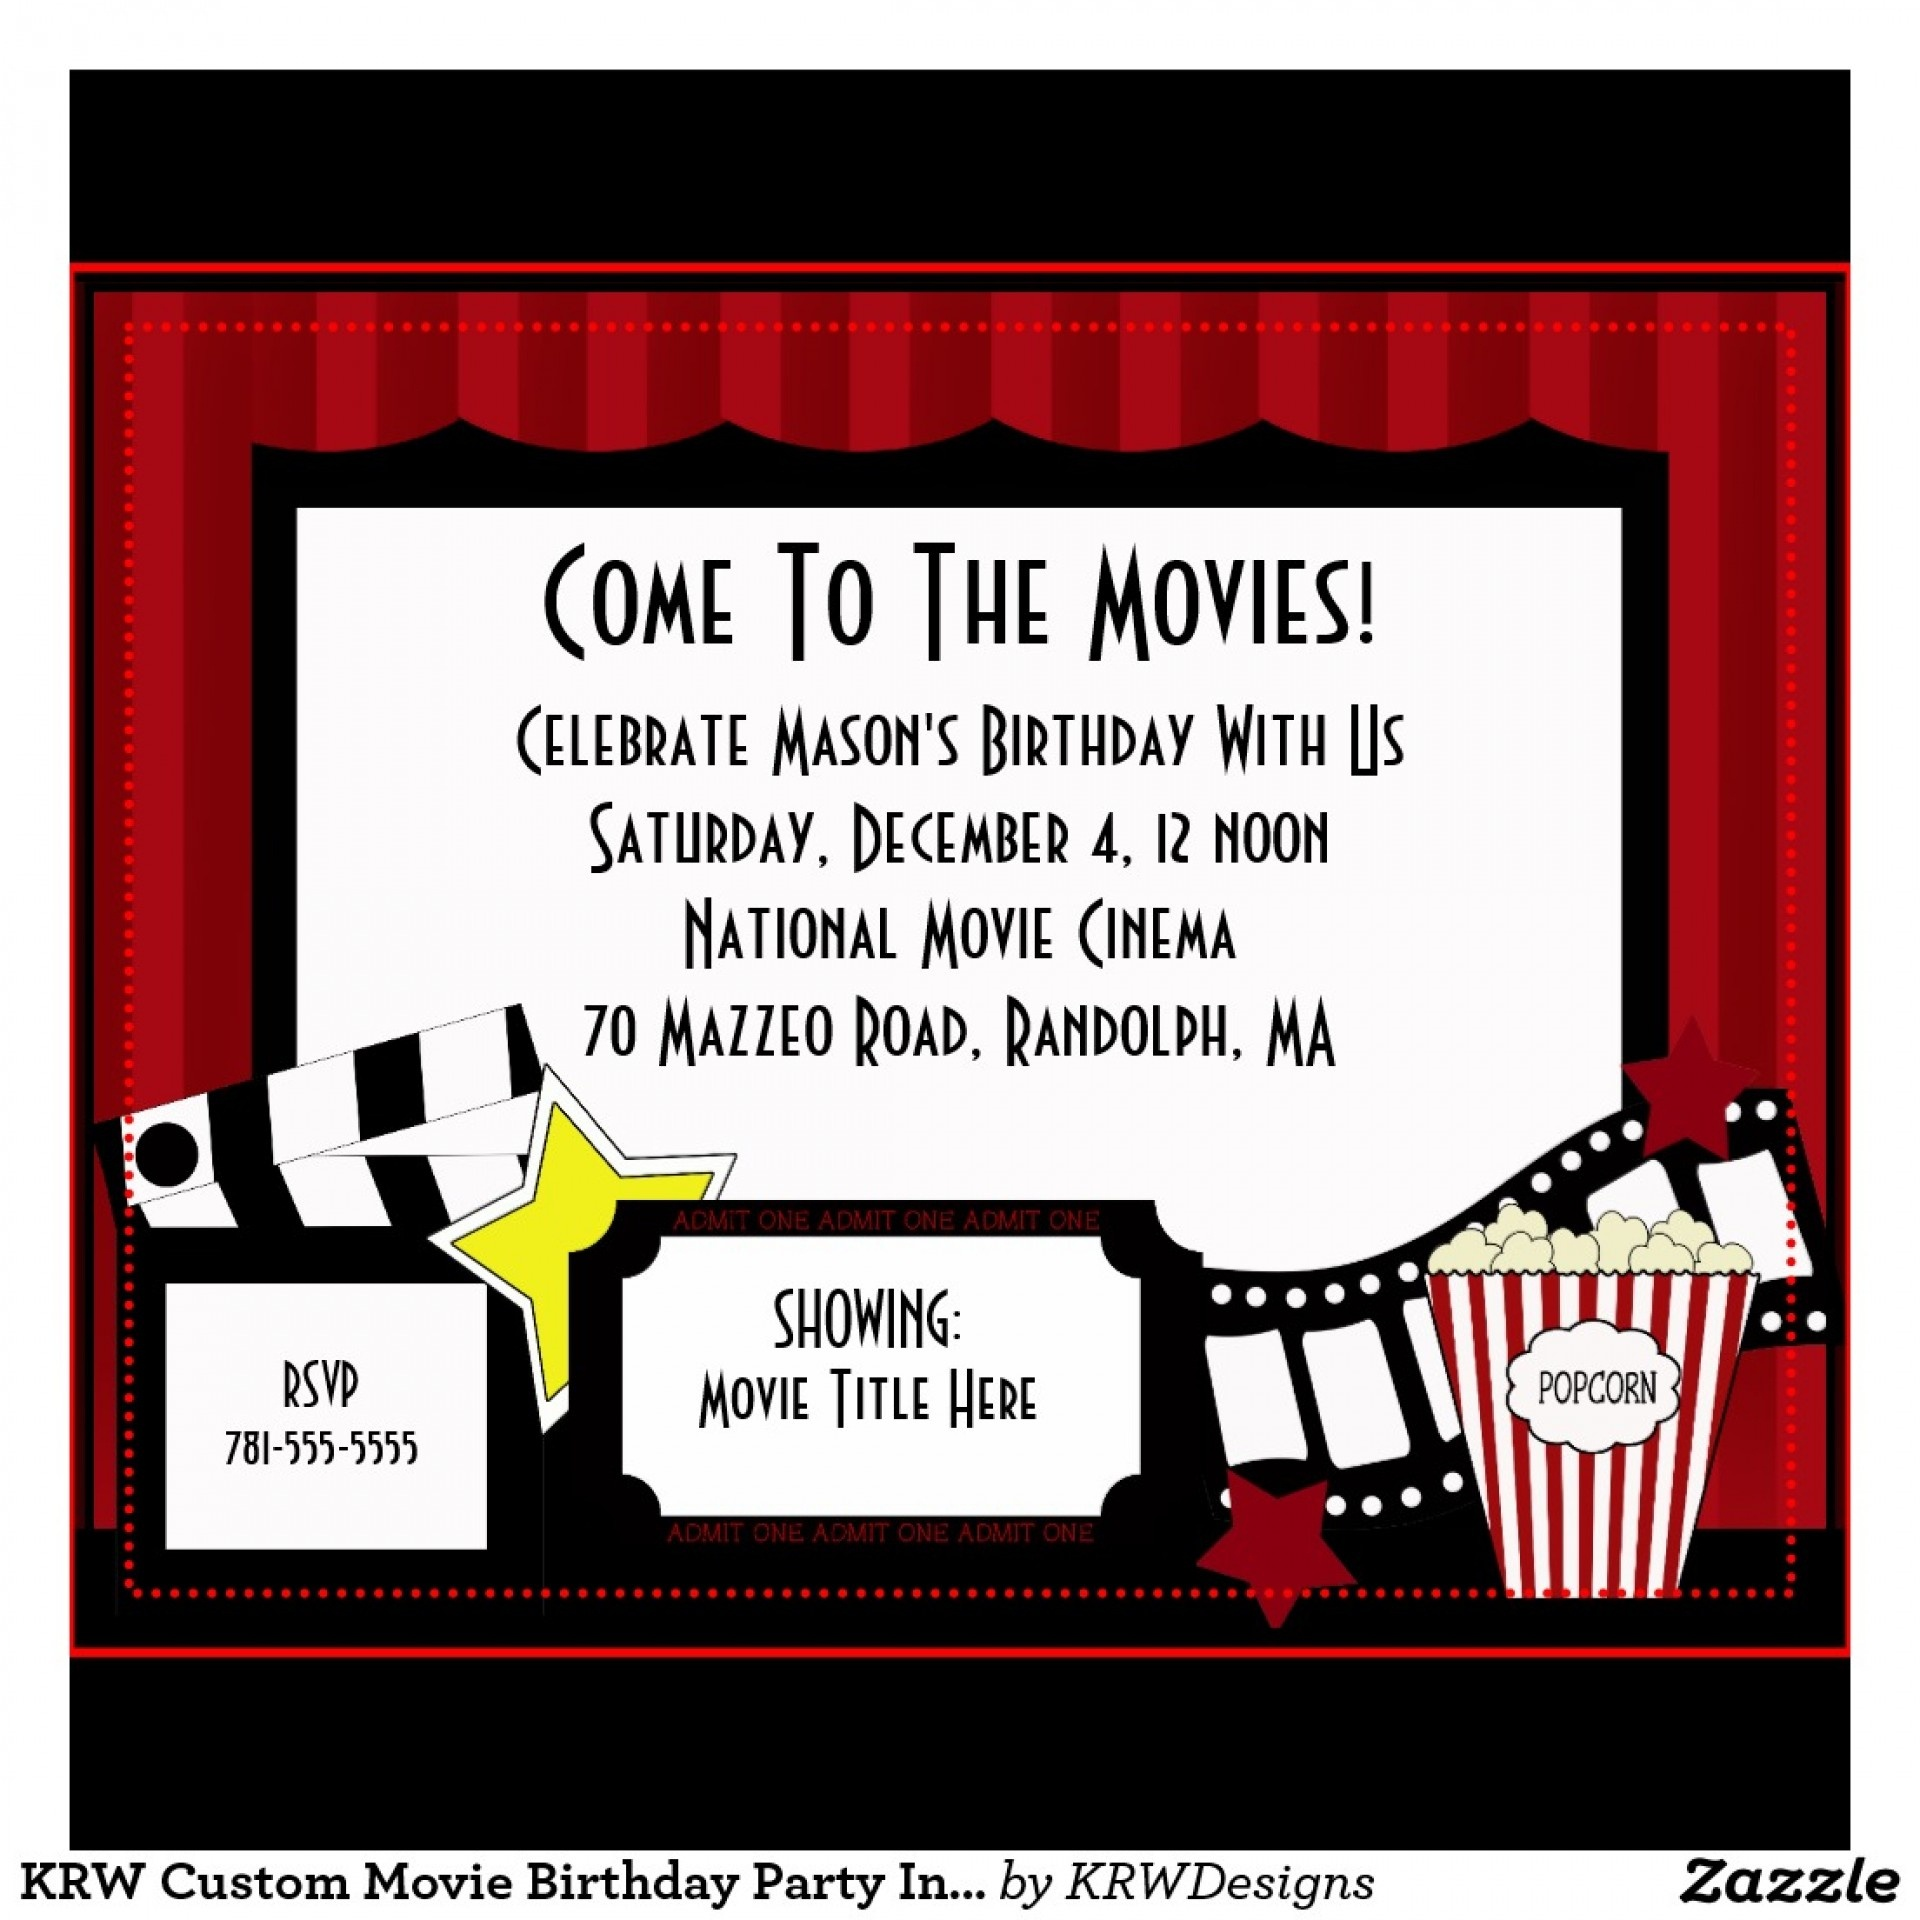 006 Hollywood Themed Invitations Free Templates Template Stunning - Free Printable Movie Themed Invitations